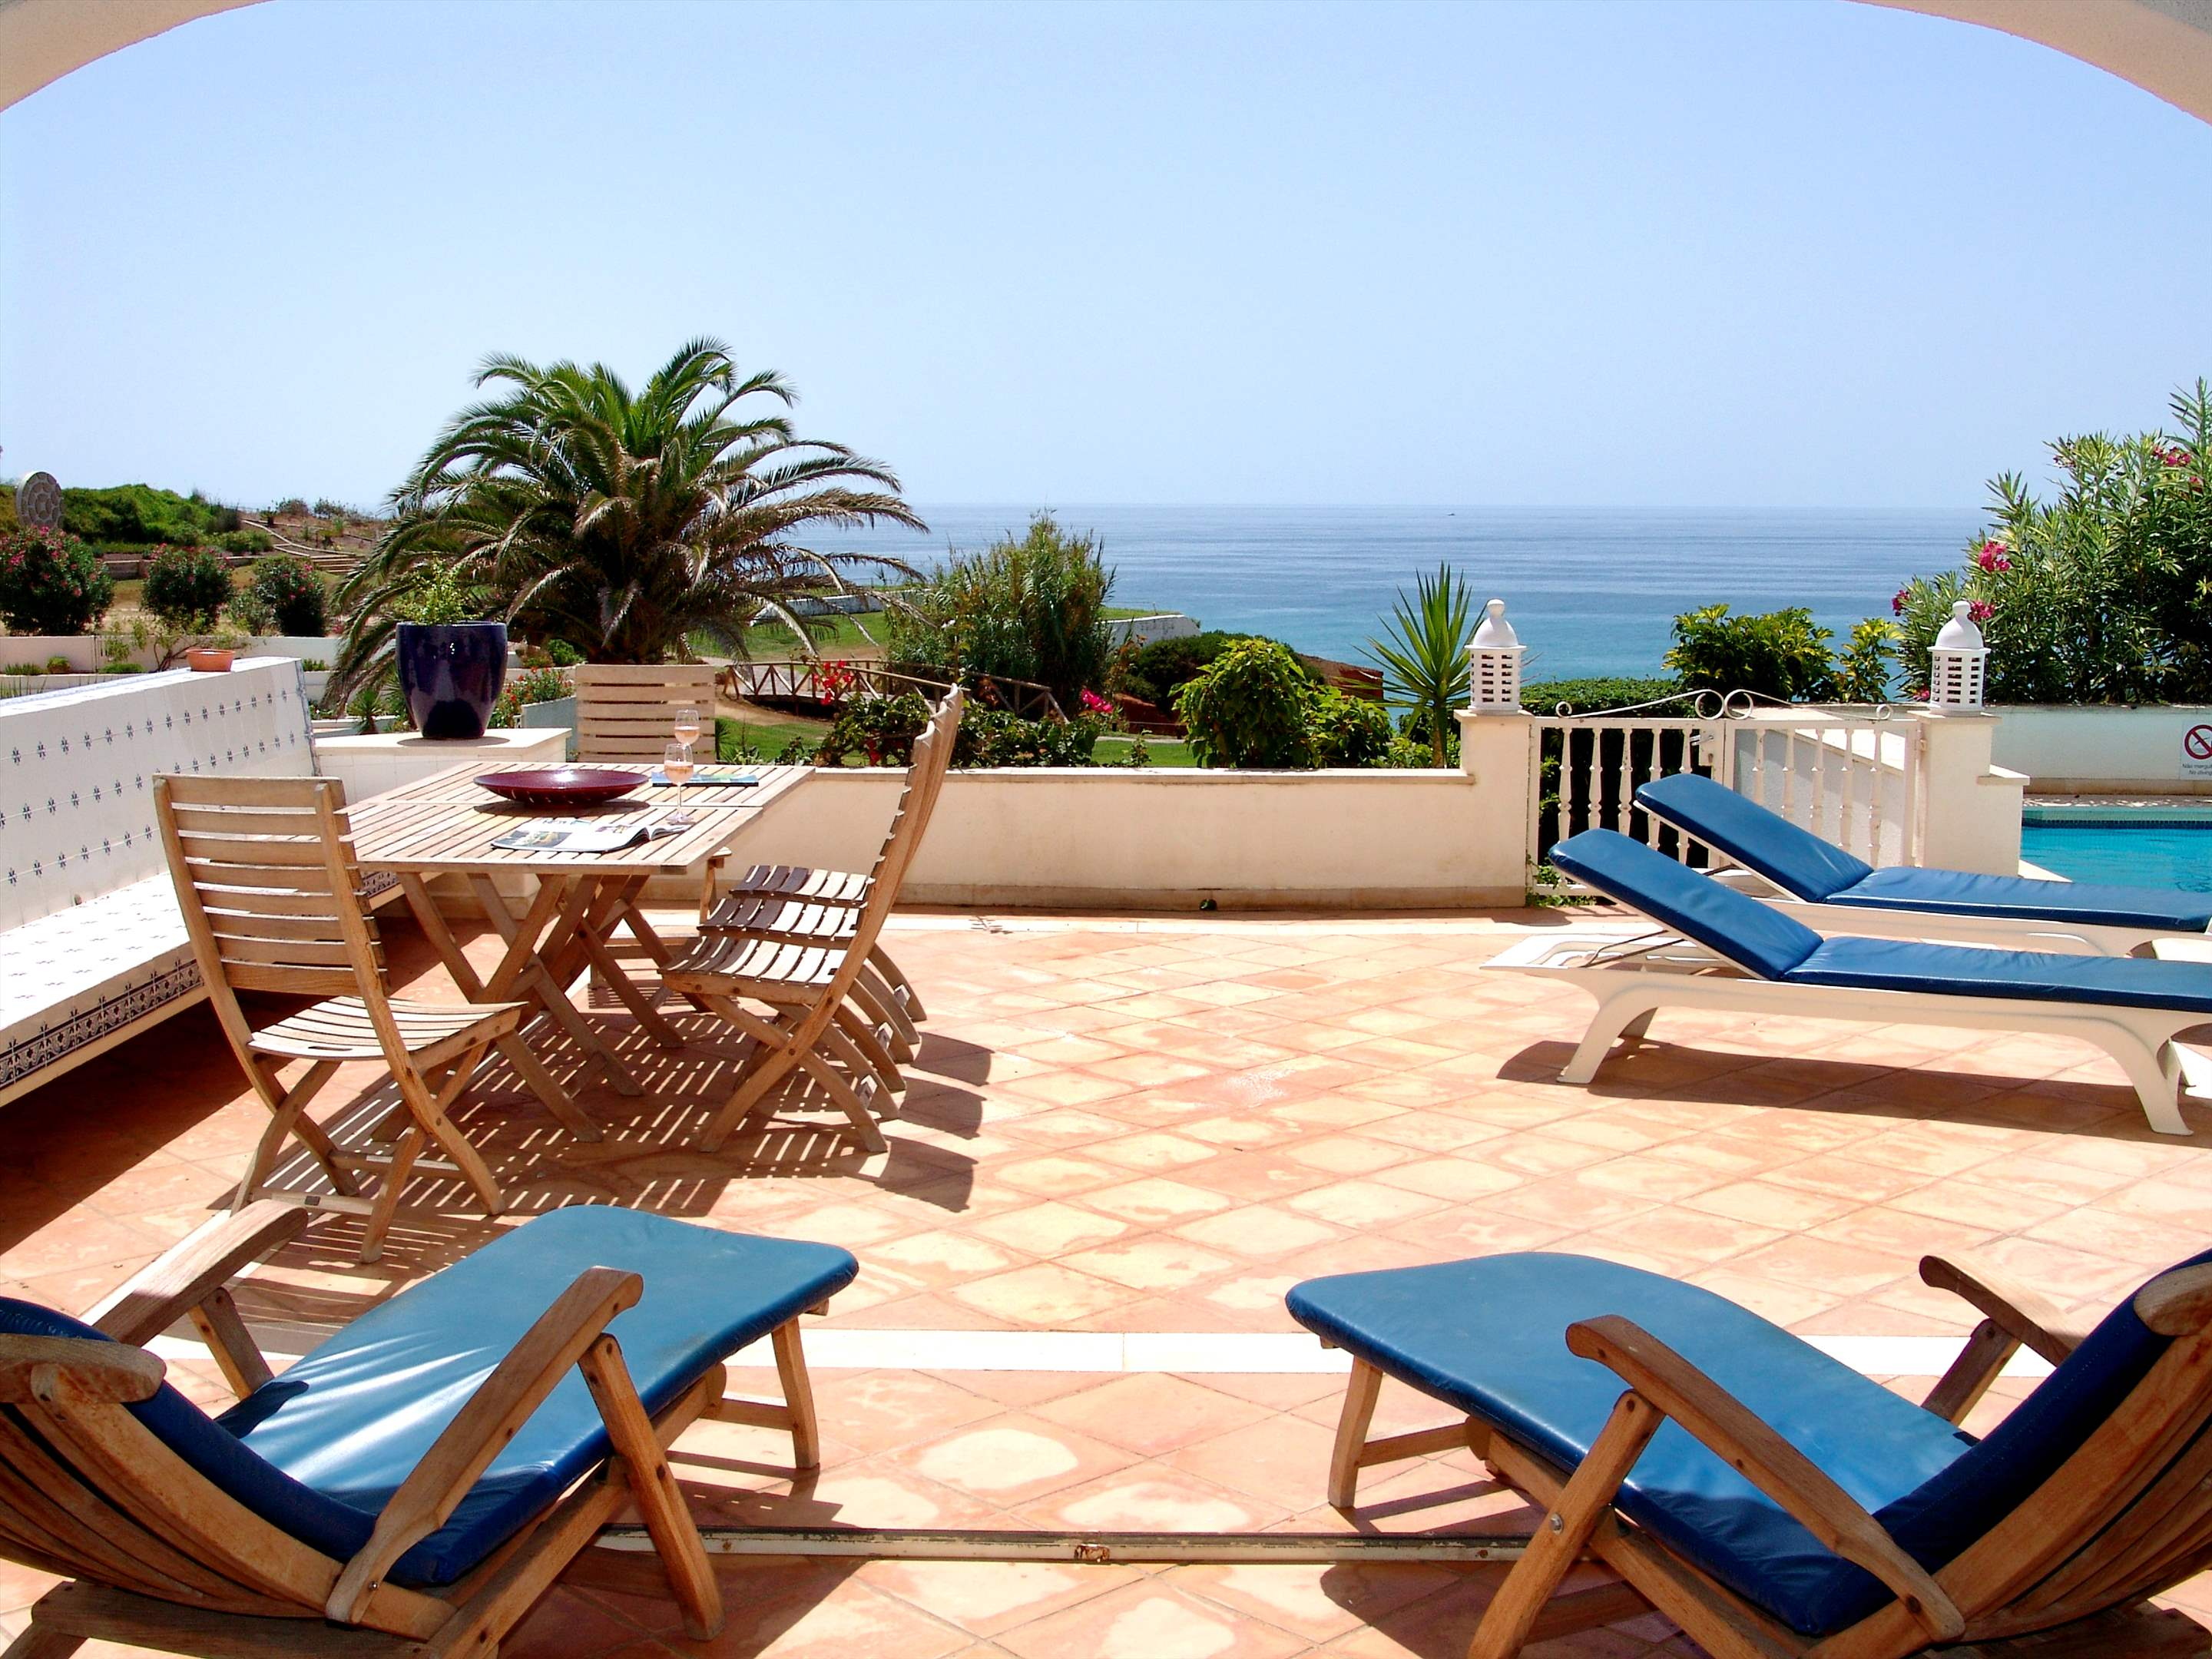 Villas Louisa, 5 bedroom, 5 bedroom villa in Vale do Lobo, Algarve Photo #24